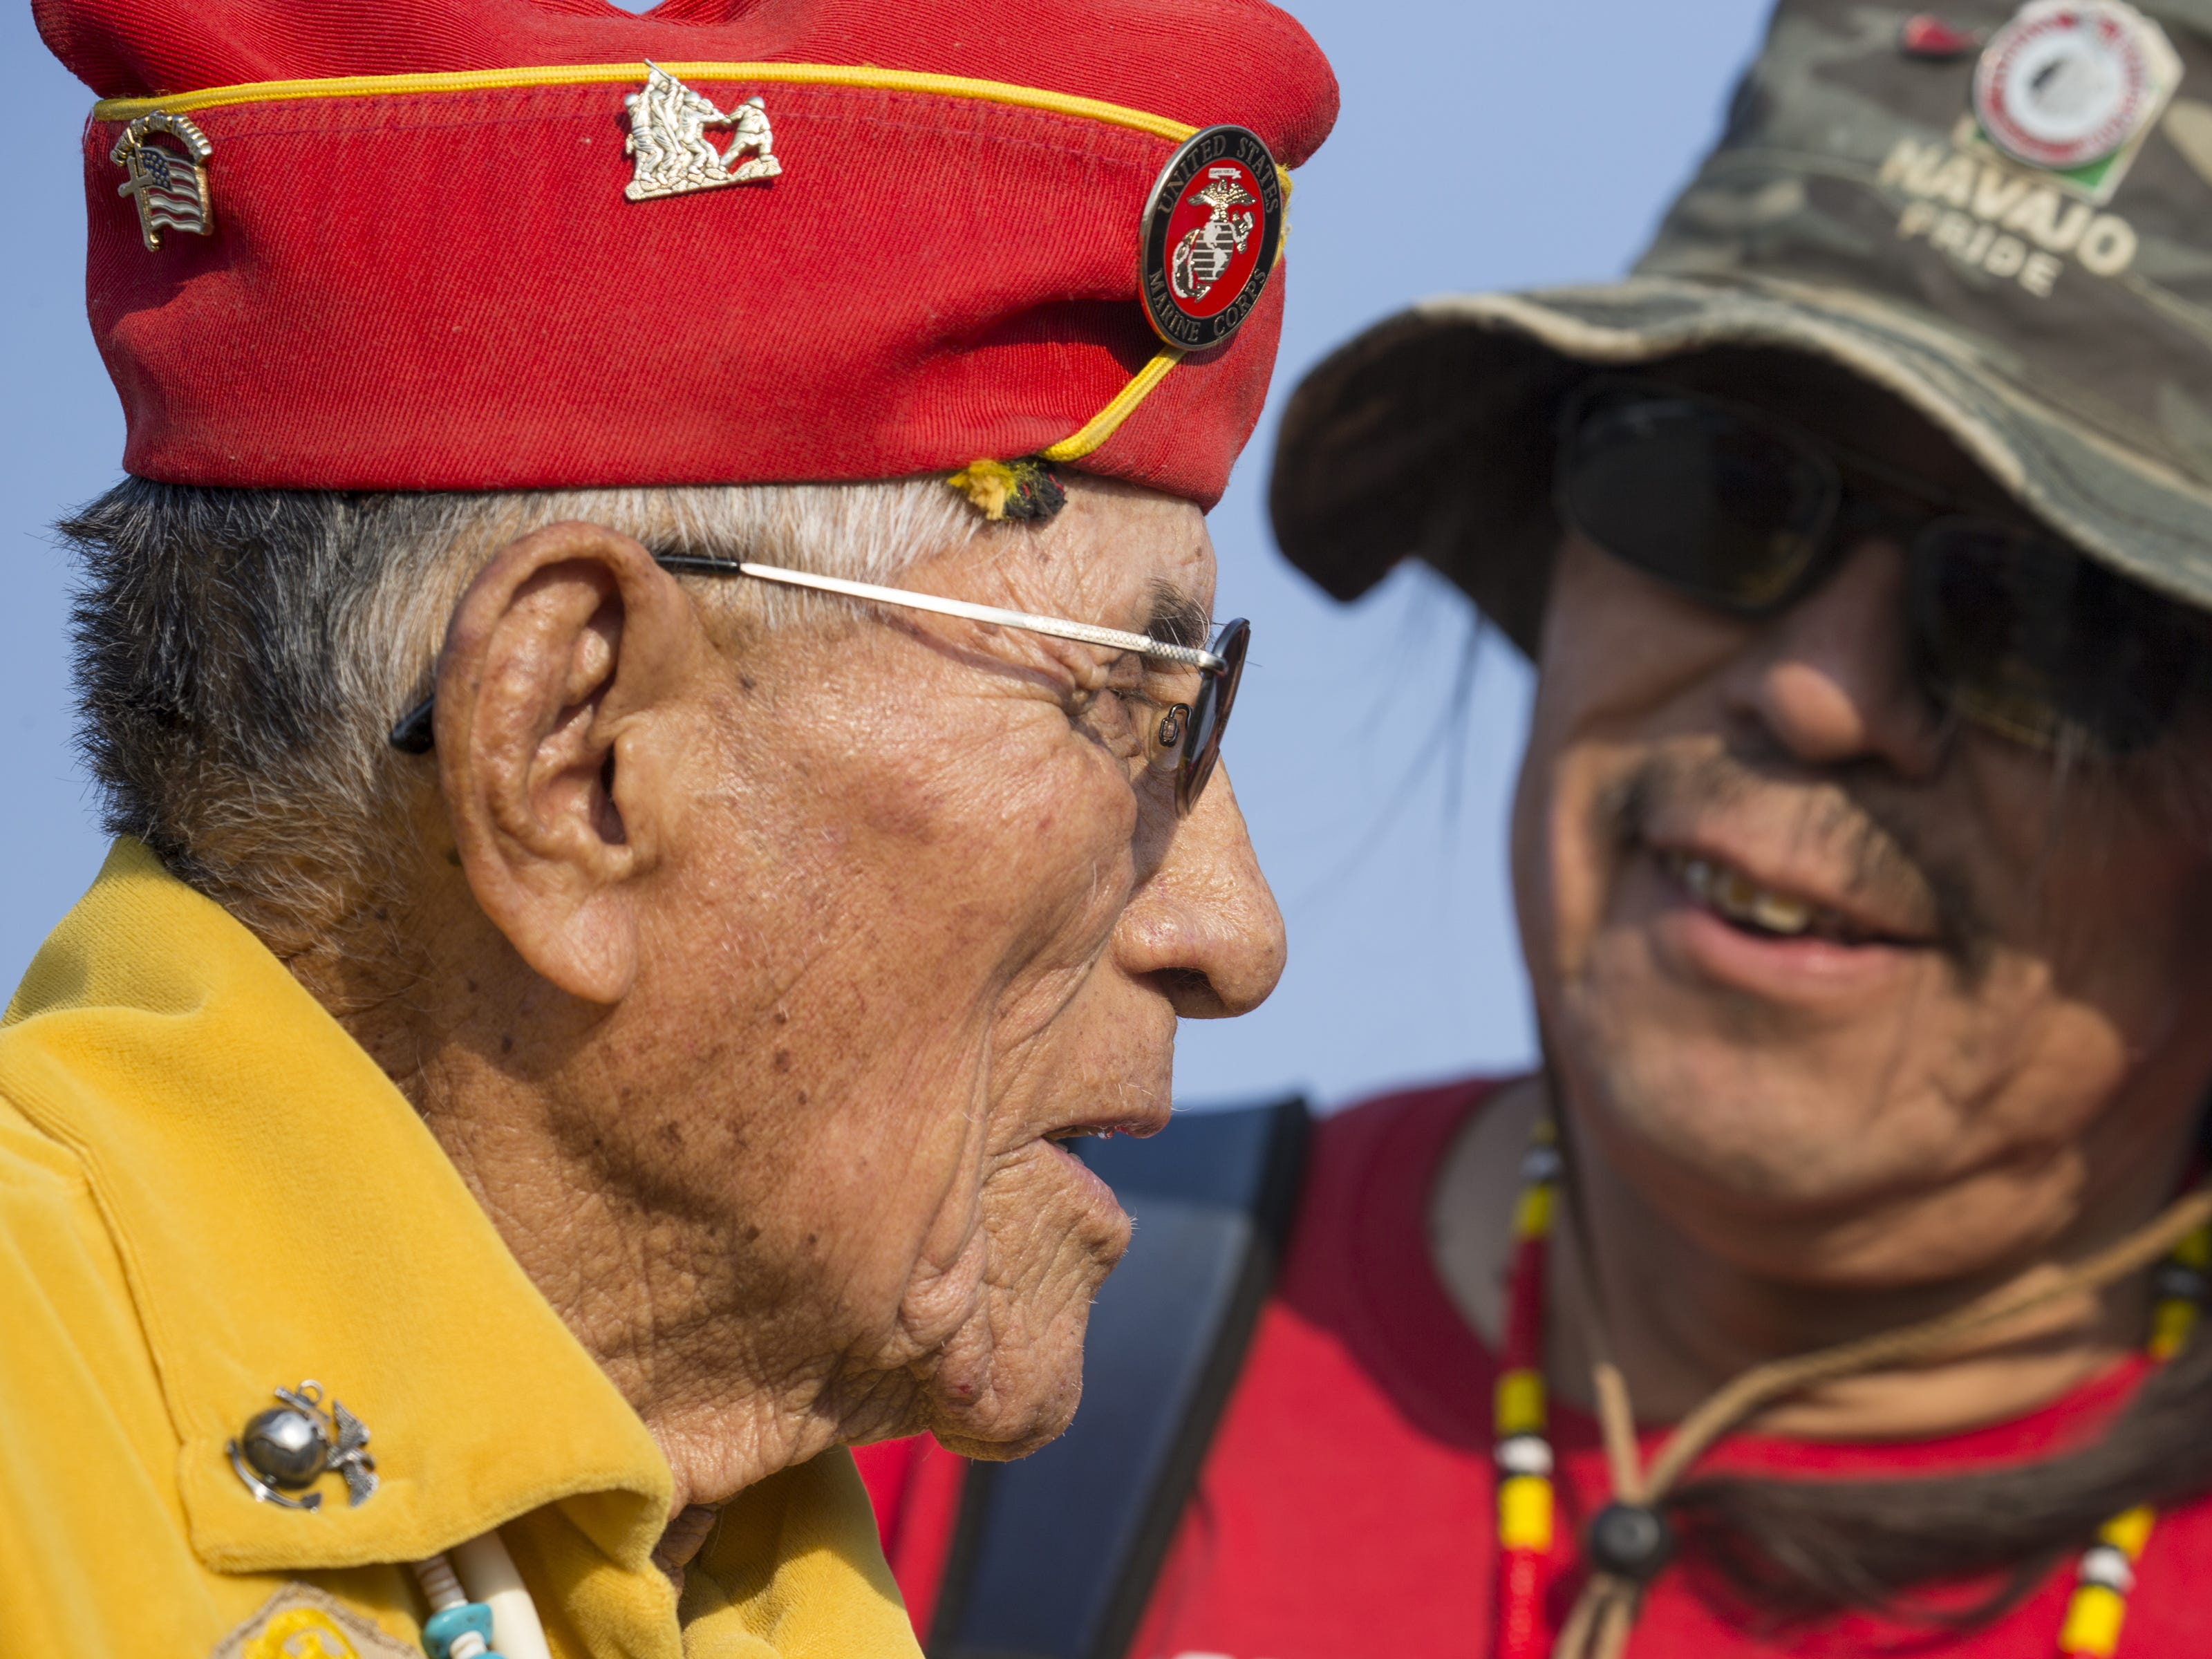 Navajo Code Talker John Kinsel, Sr. is greeted by his grandson, Rick Hoskie (right), while they wait for the start of the Navajo Nation Code Talkers Day parade on Aug. 14, 2018, at the Navajo Nation Fairgrounds in Window Rock.